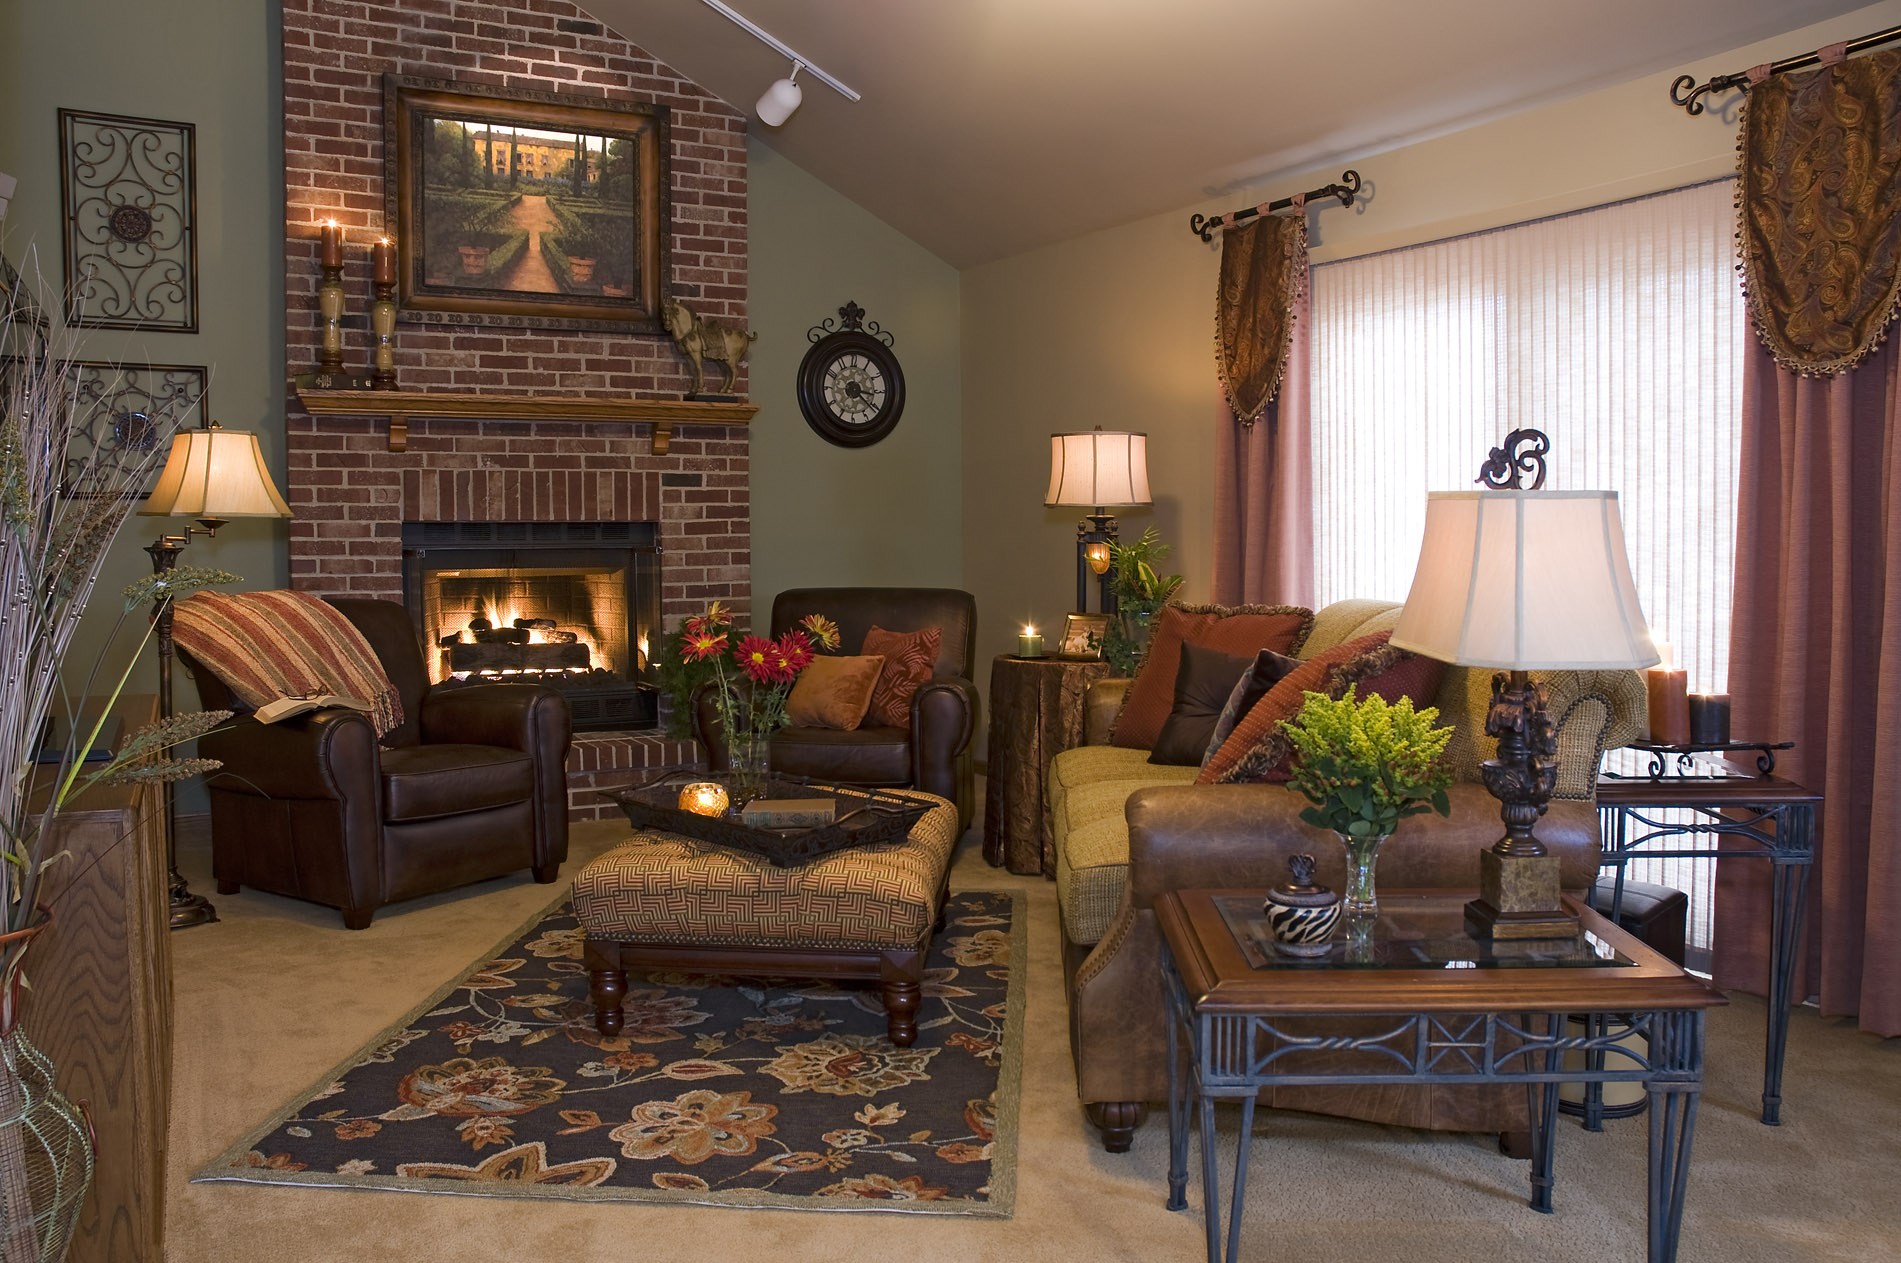 3 decorating tips to help give your home a fresh new look Help arranging furniture